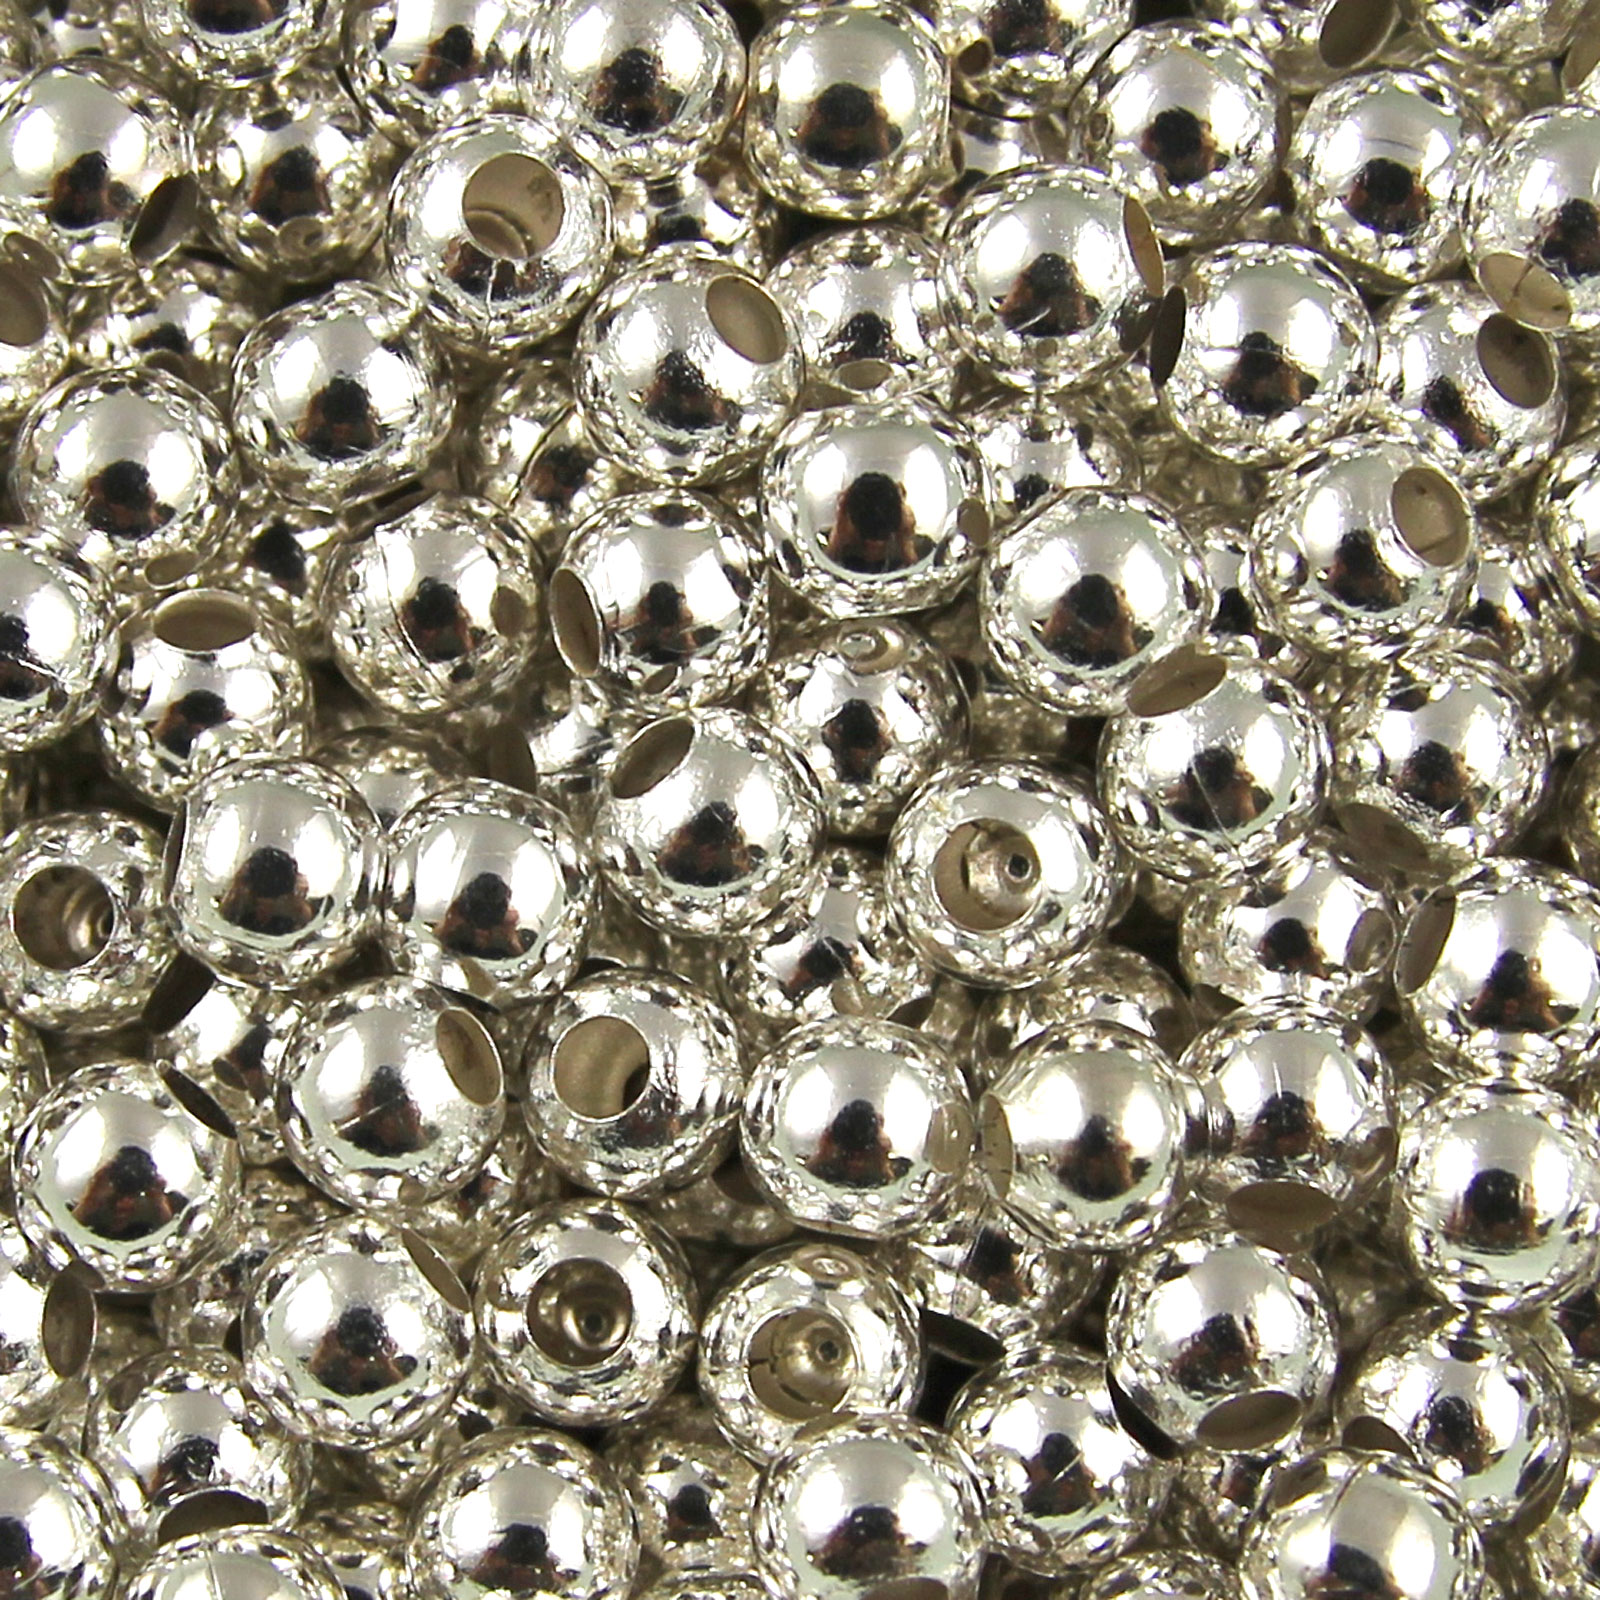 100-to-1000-Bronze-Gold-amp-Silver-Plated-Metal-Round-Spacer-Beads-2mm-to-8mm